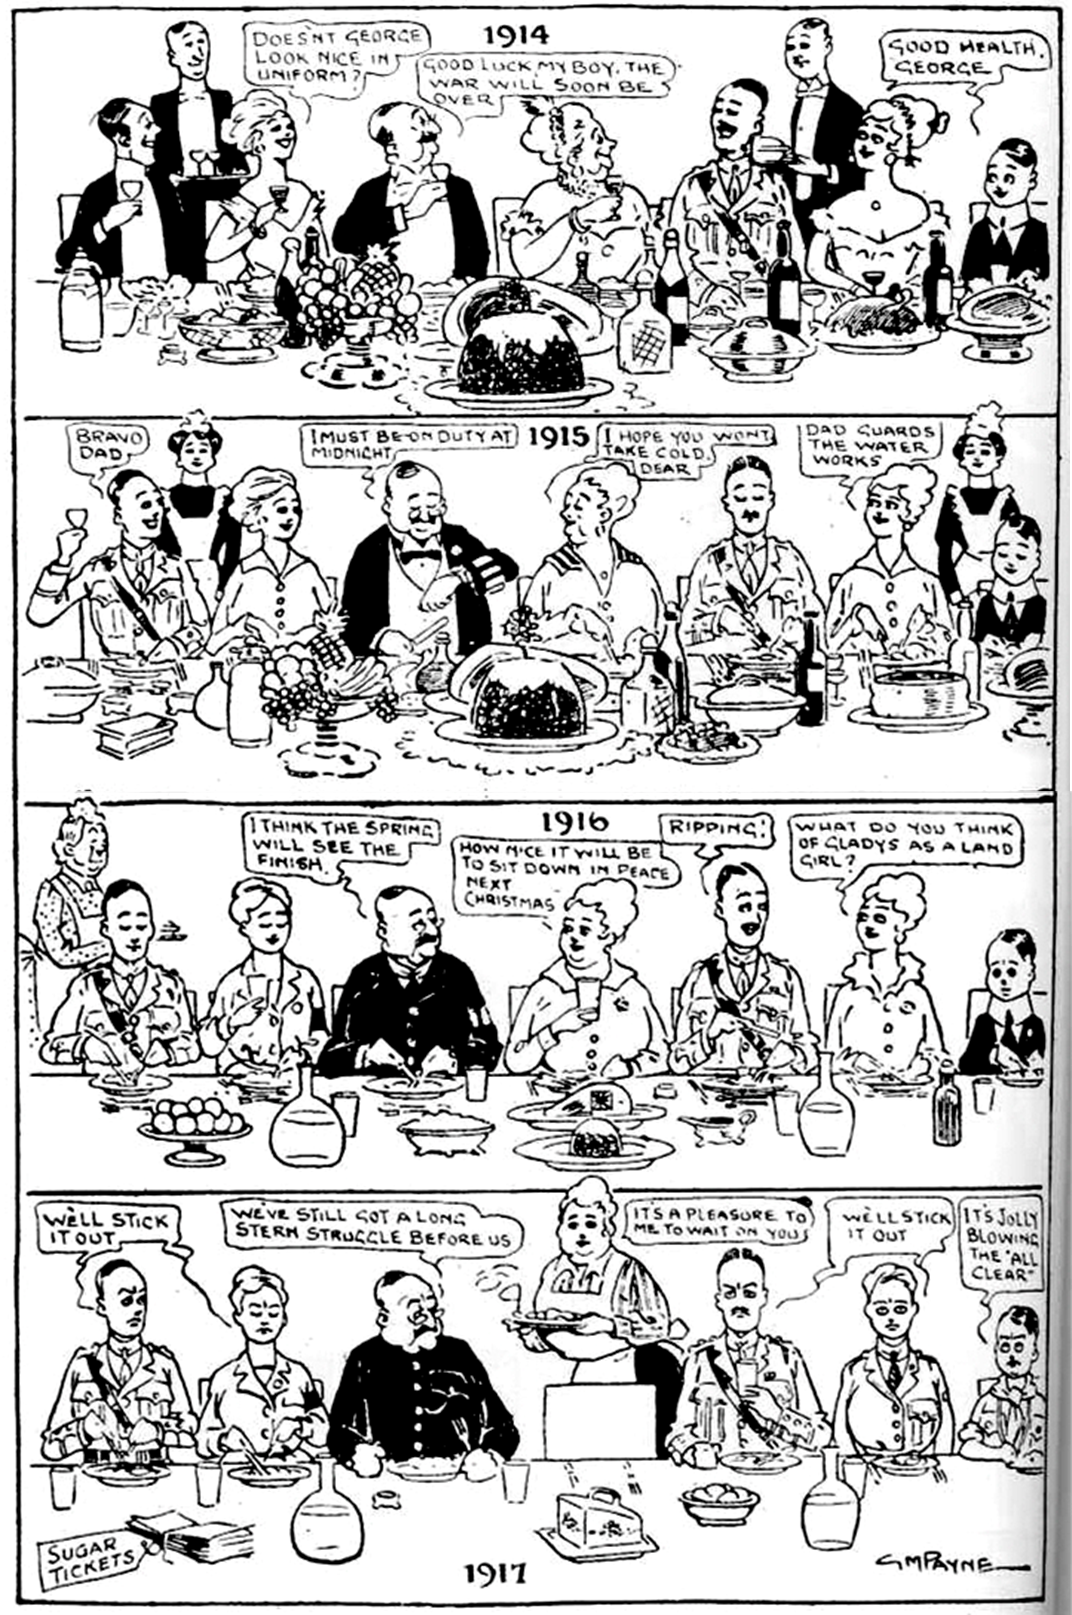 The Brown Family S Four War Christmases Cartoon History